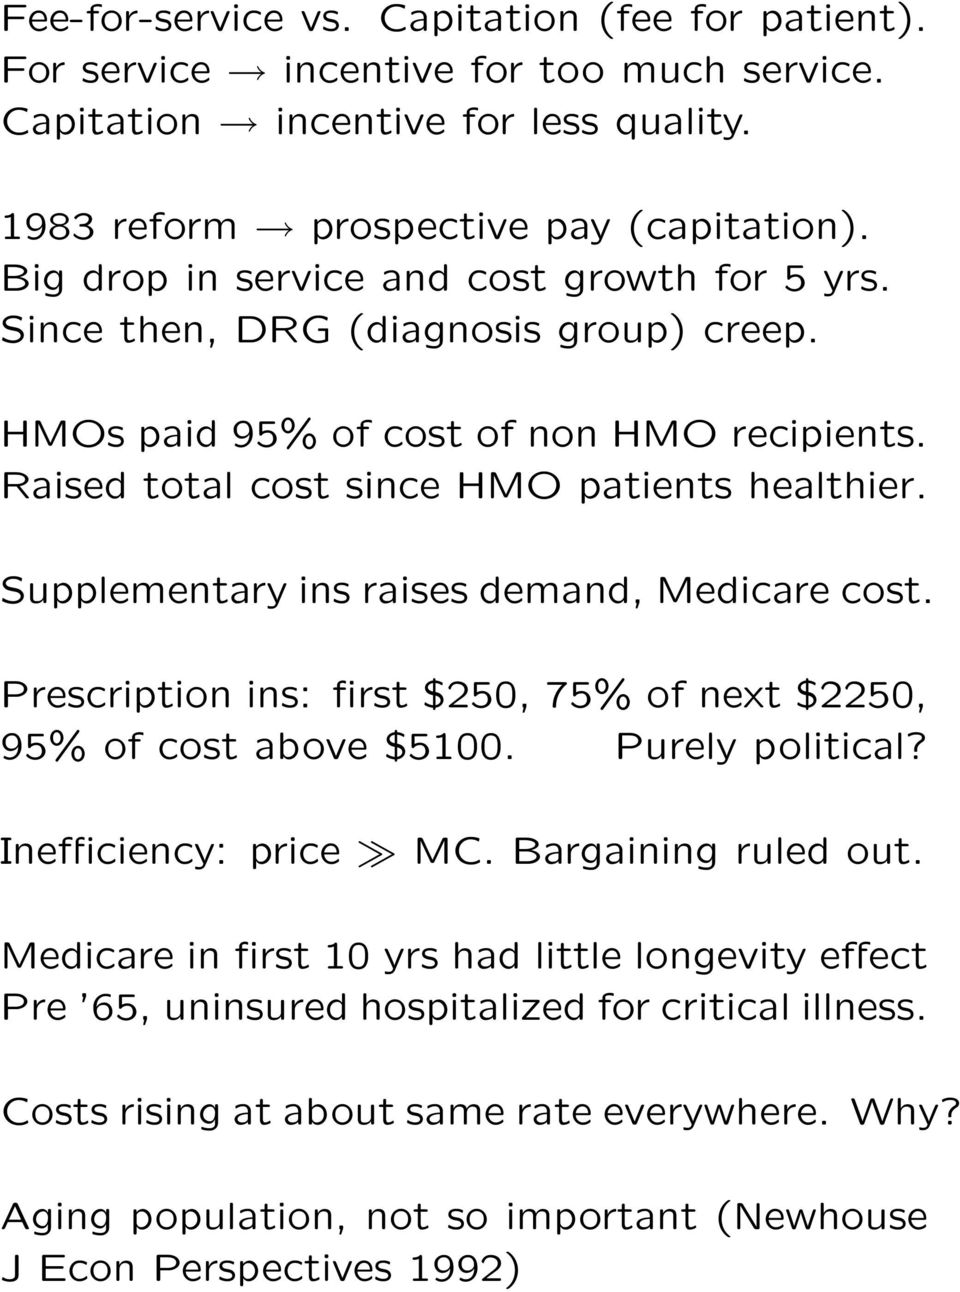 Supplementary ins raises demand, Medicare cost. Prescription ins: first $250, 75% of next $2250, 95% of cost above $5100. Purely political? Inefficiency: price MC. Bargaining ruled out.